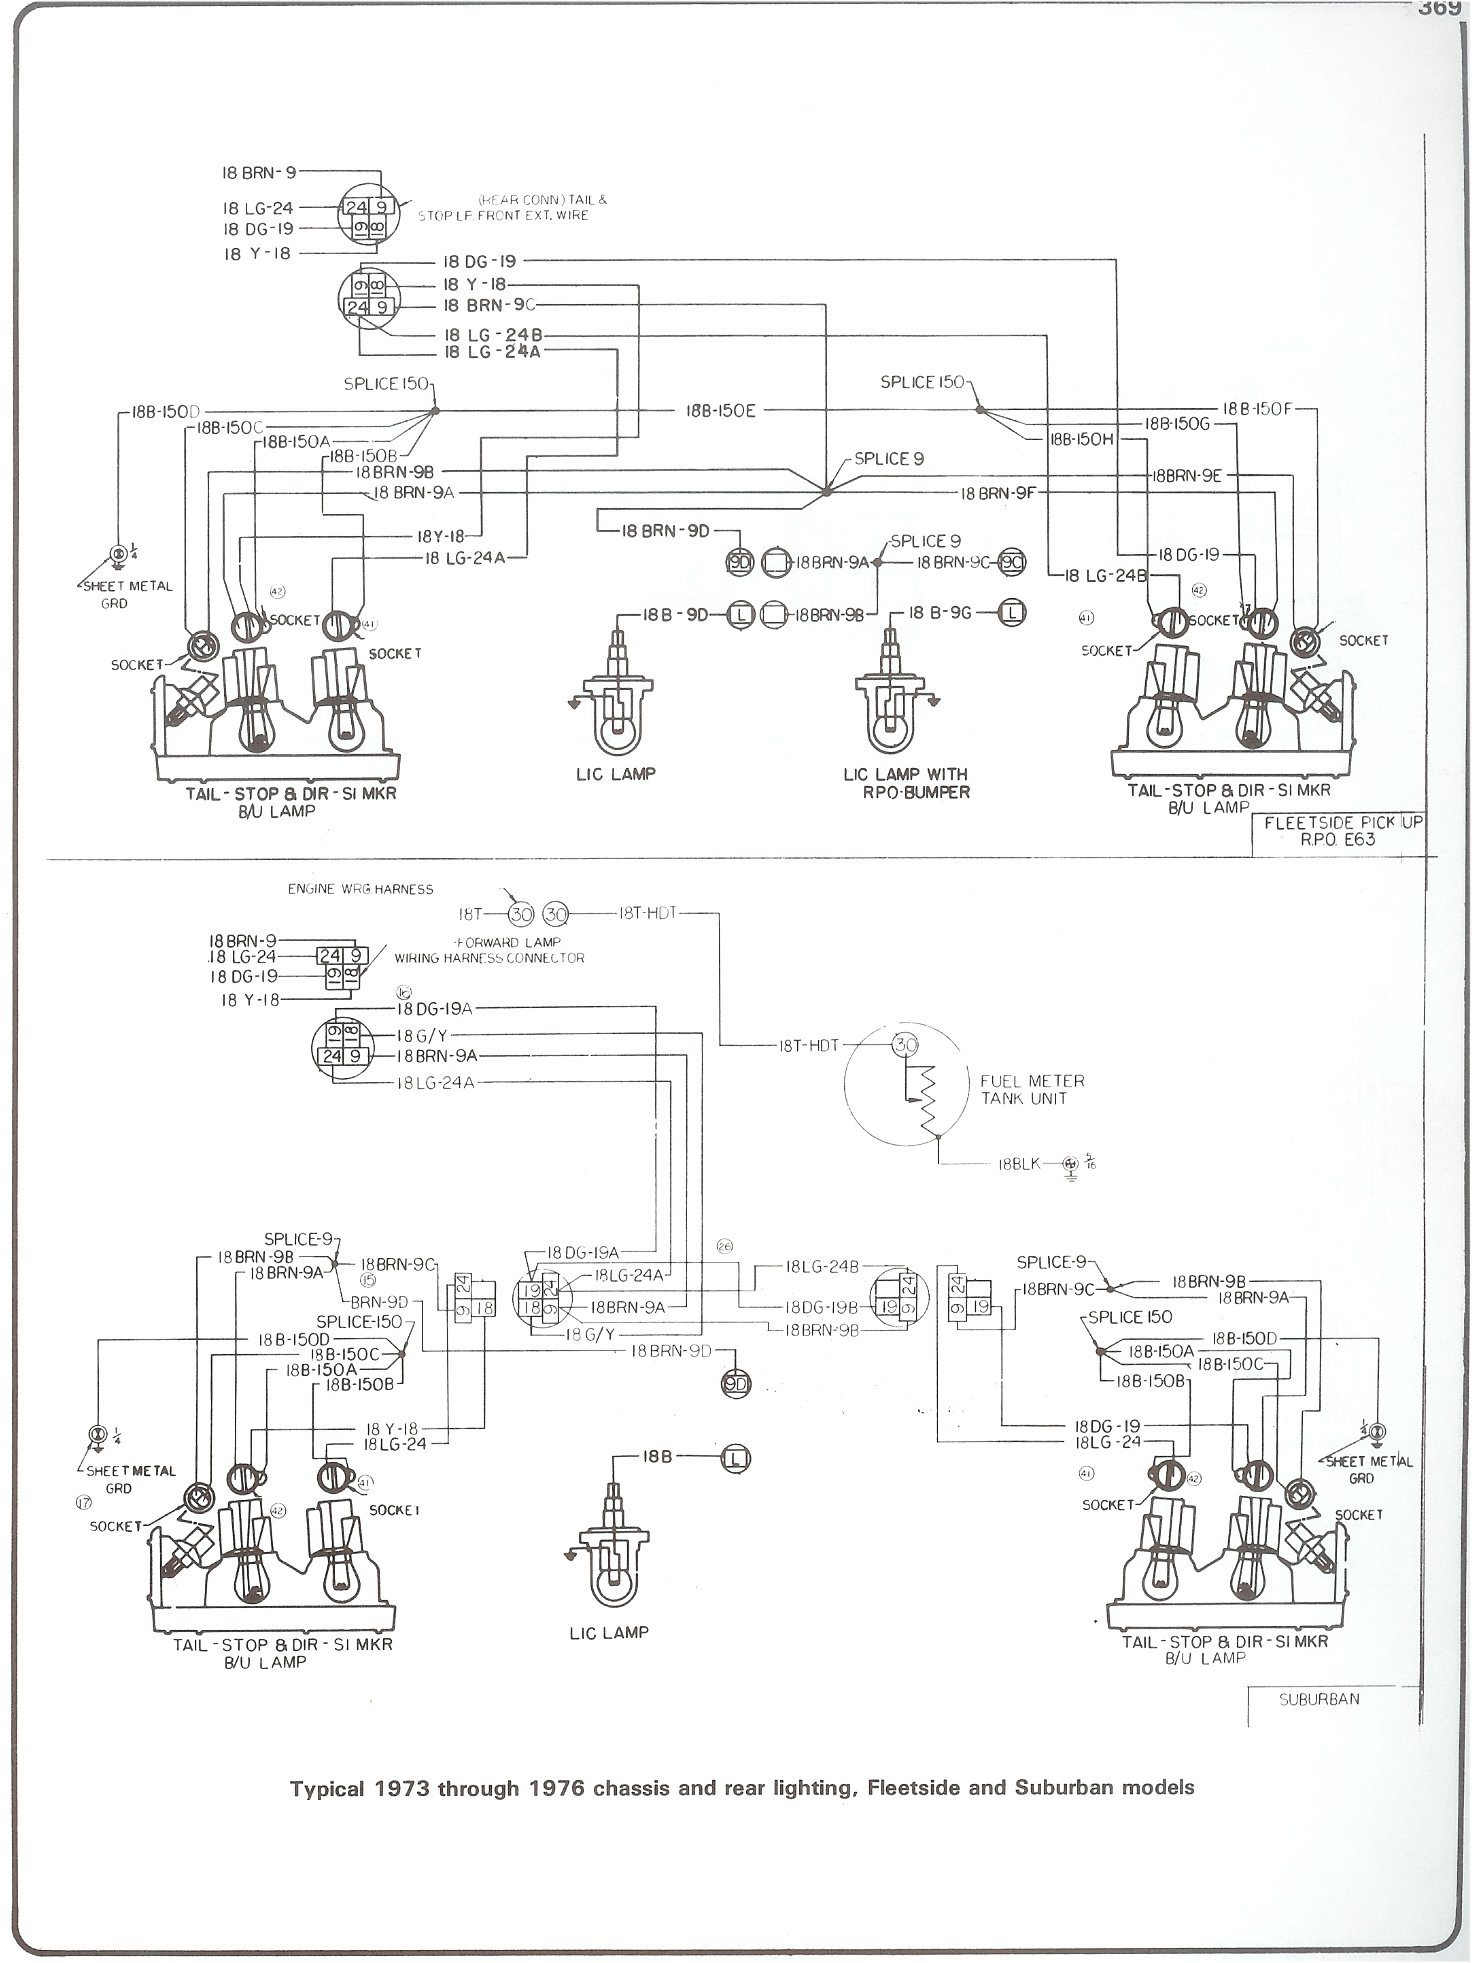 Complete 73 87 Wiring Diagrams 2009 Chevrolet Impala Diagram 76 Chassis Rear Lighting Fleetside And Suburban